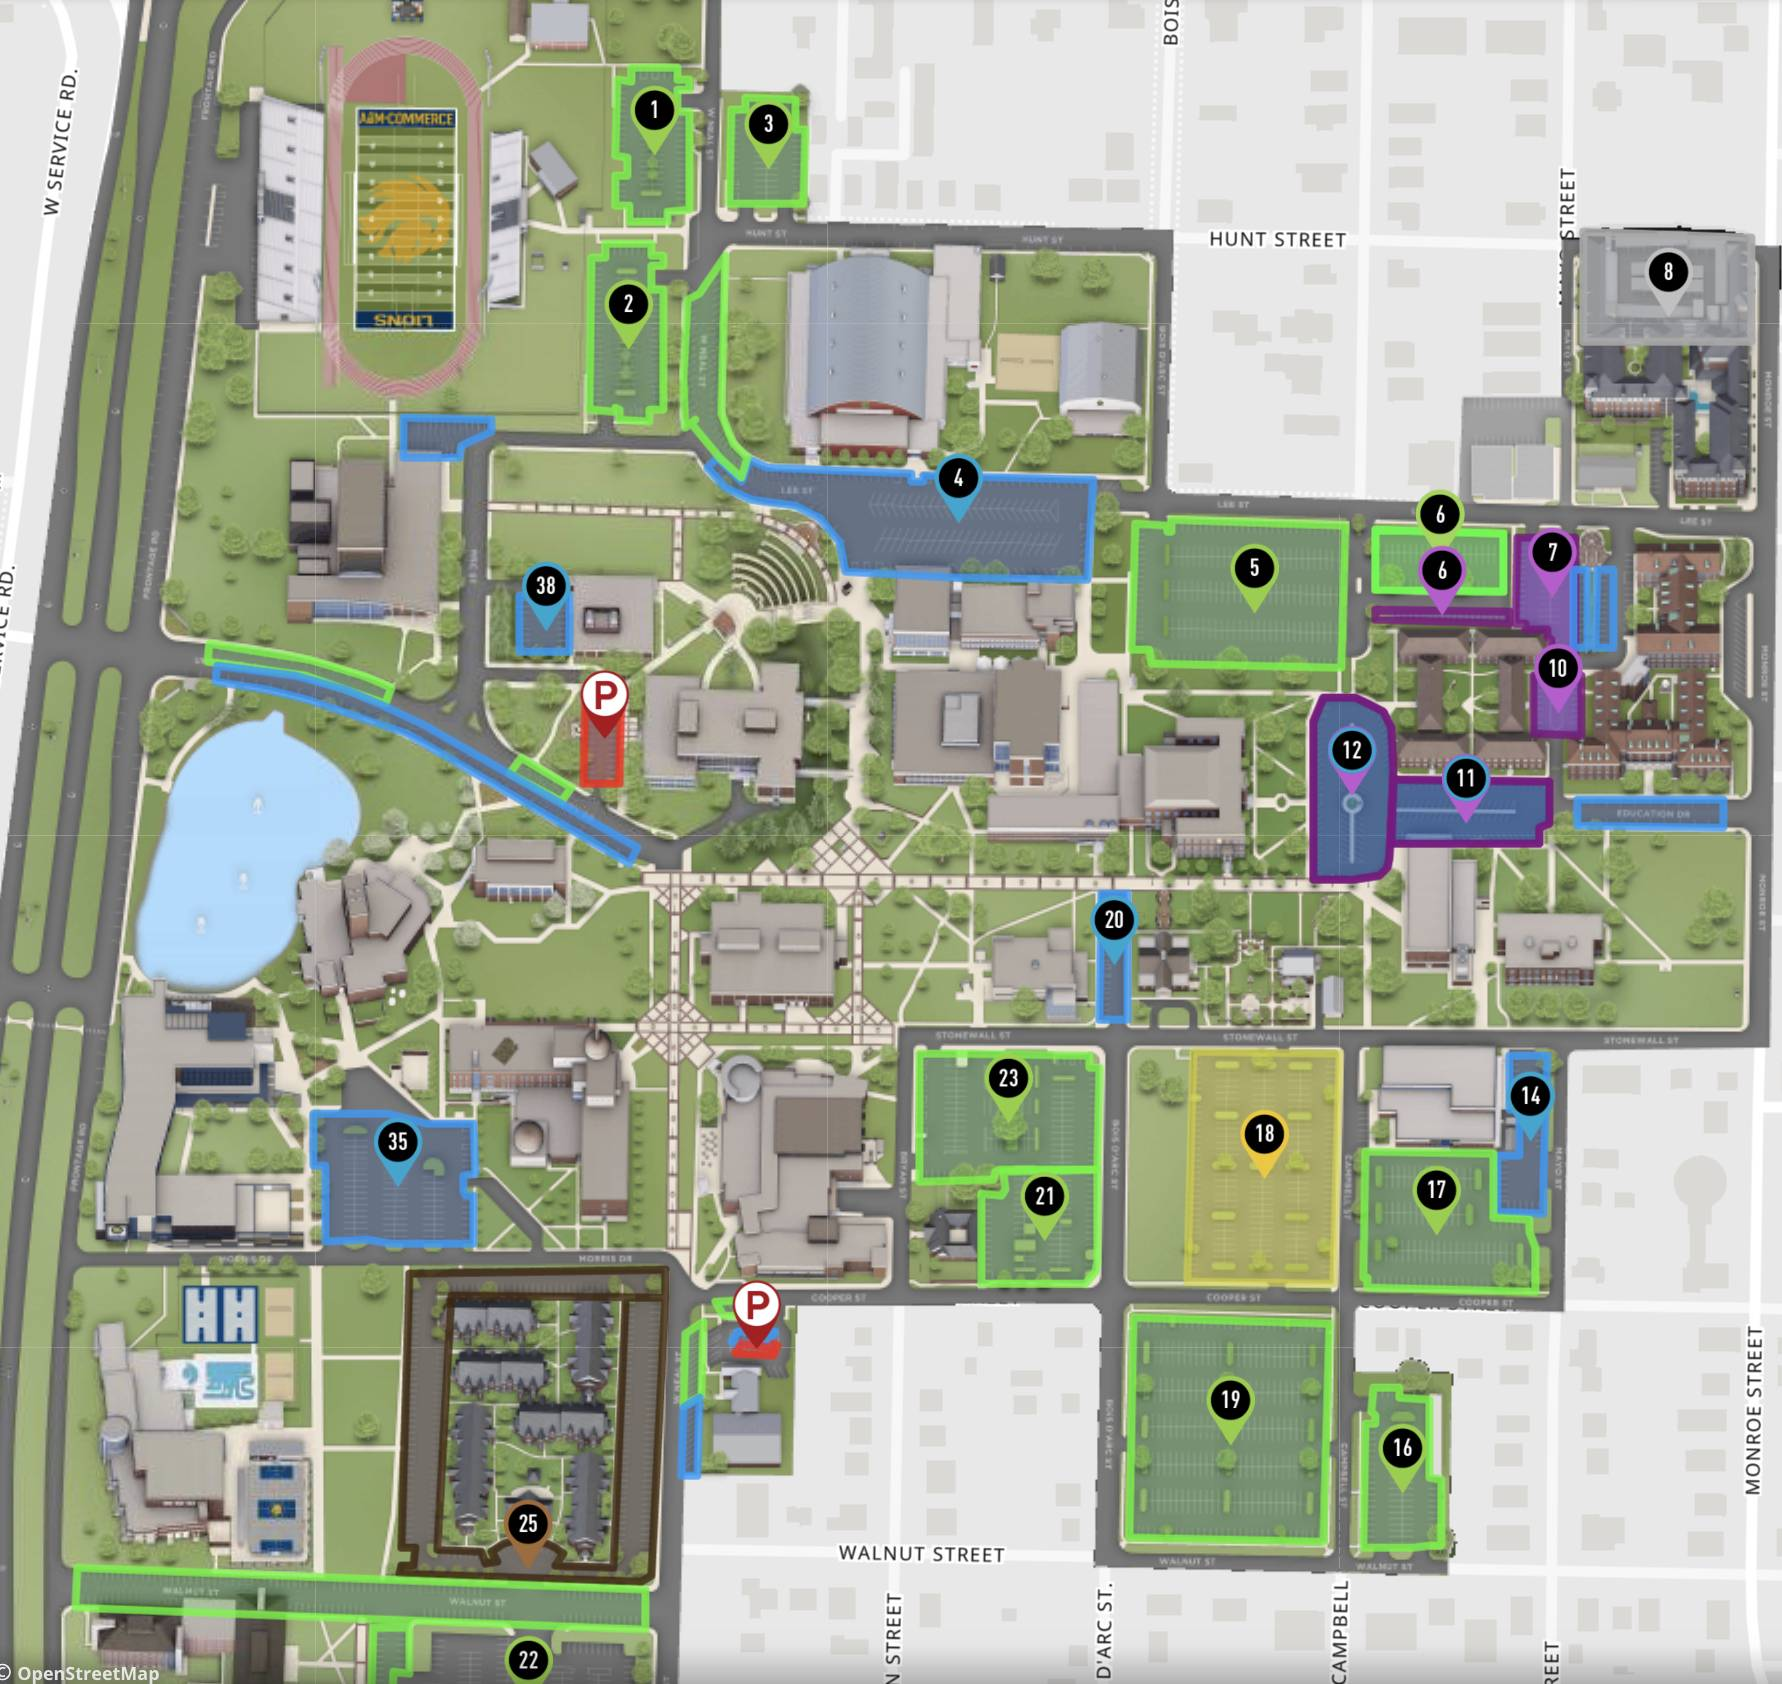 Campus map with parking lots outlined.